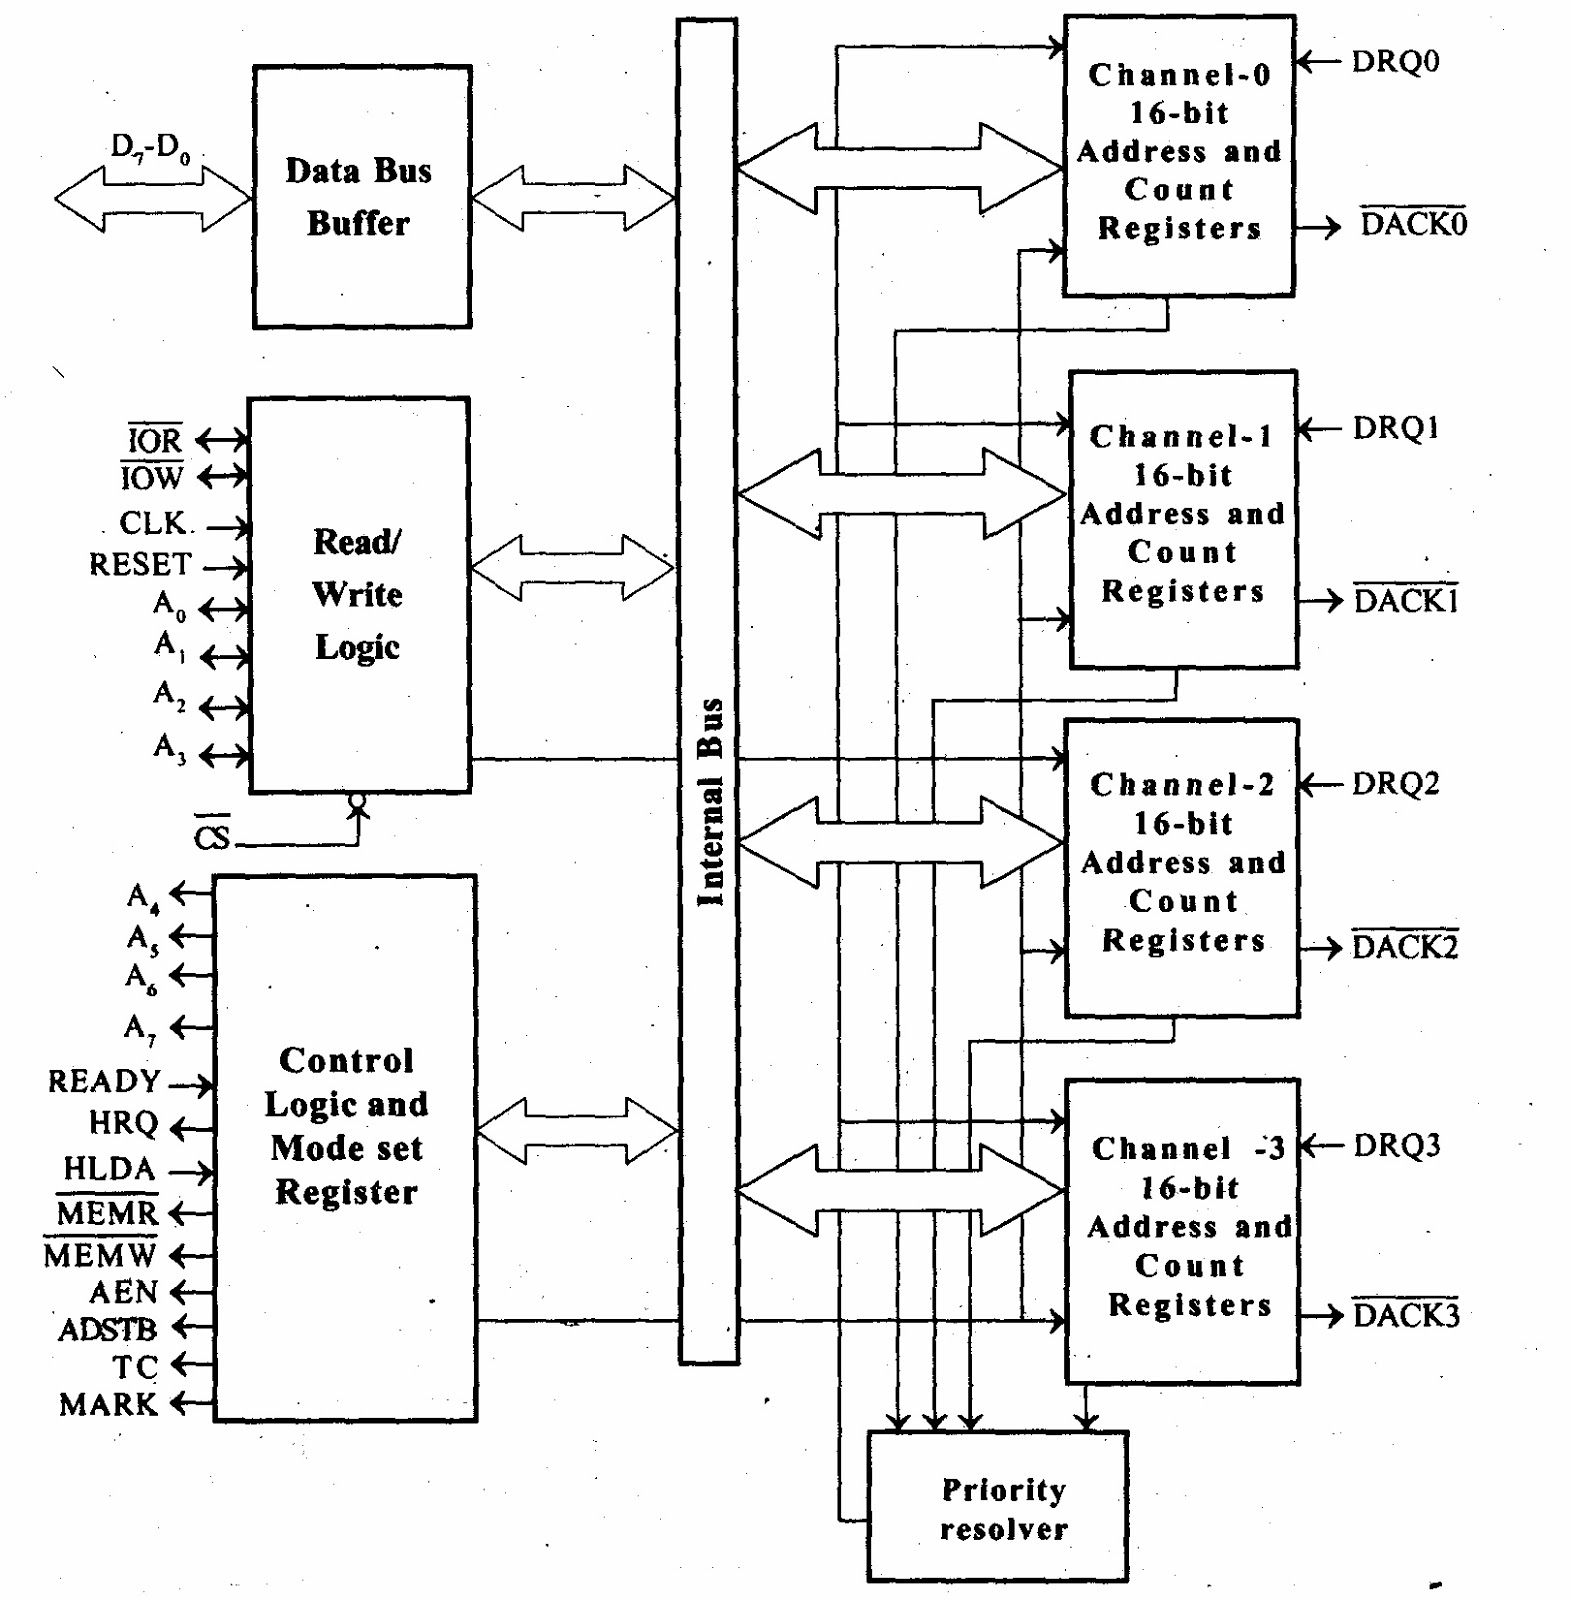 A Media To Get All Datas In Electrical Science Programmable Logic Control Diagram The Functional Blocks Of 8257 Are Data Bus Buffer Read Write Priority Resolver And Four Numbers Dma Channels